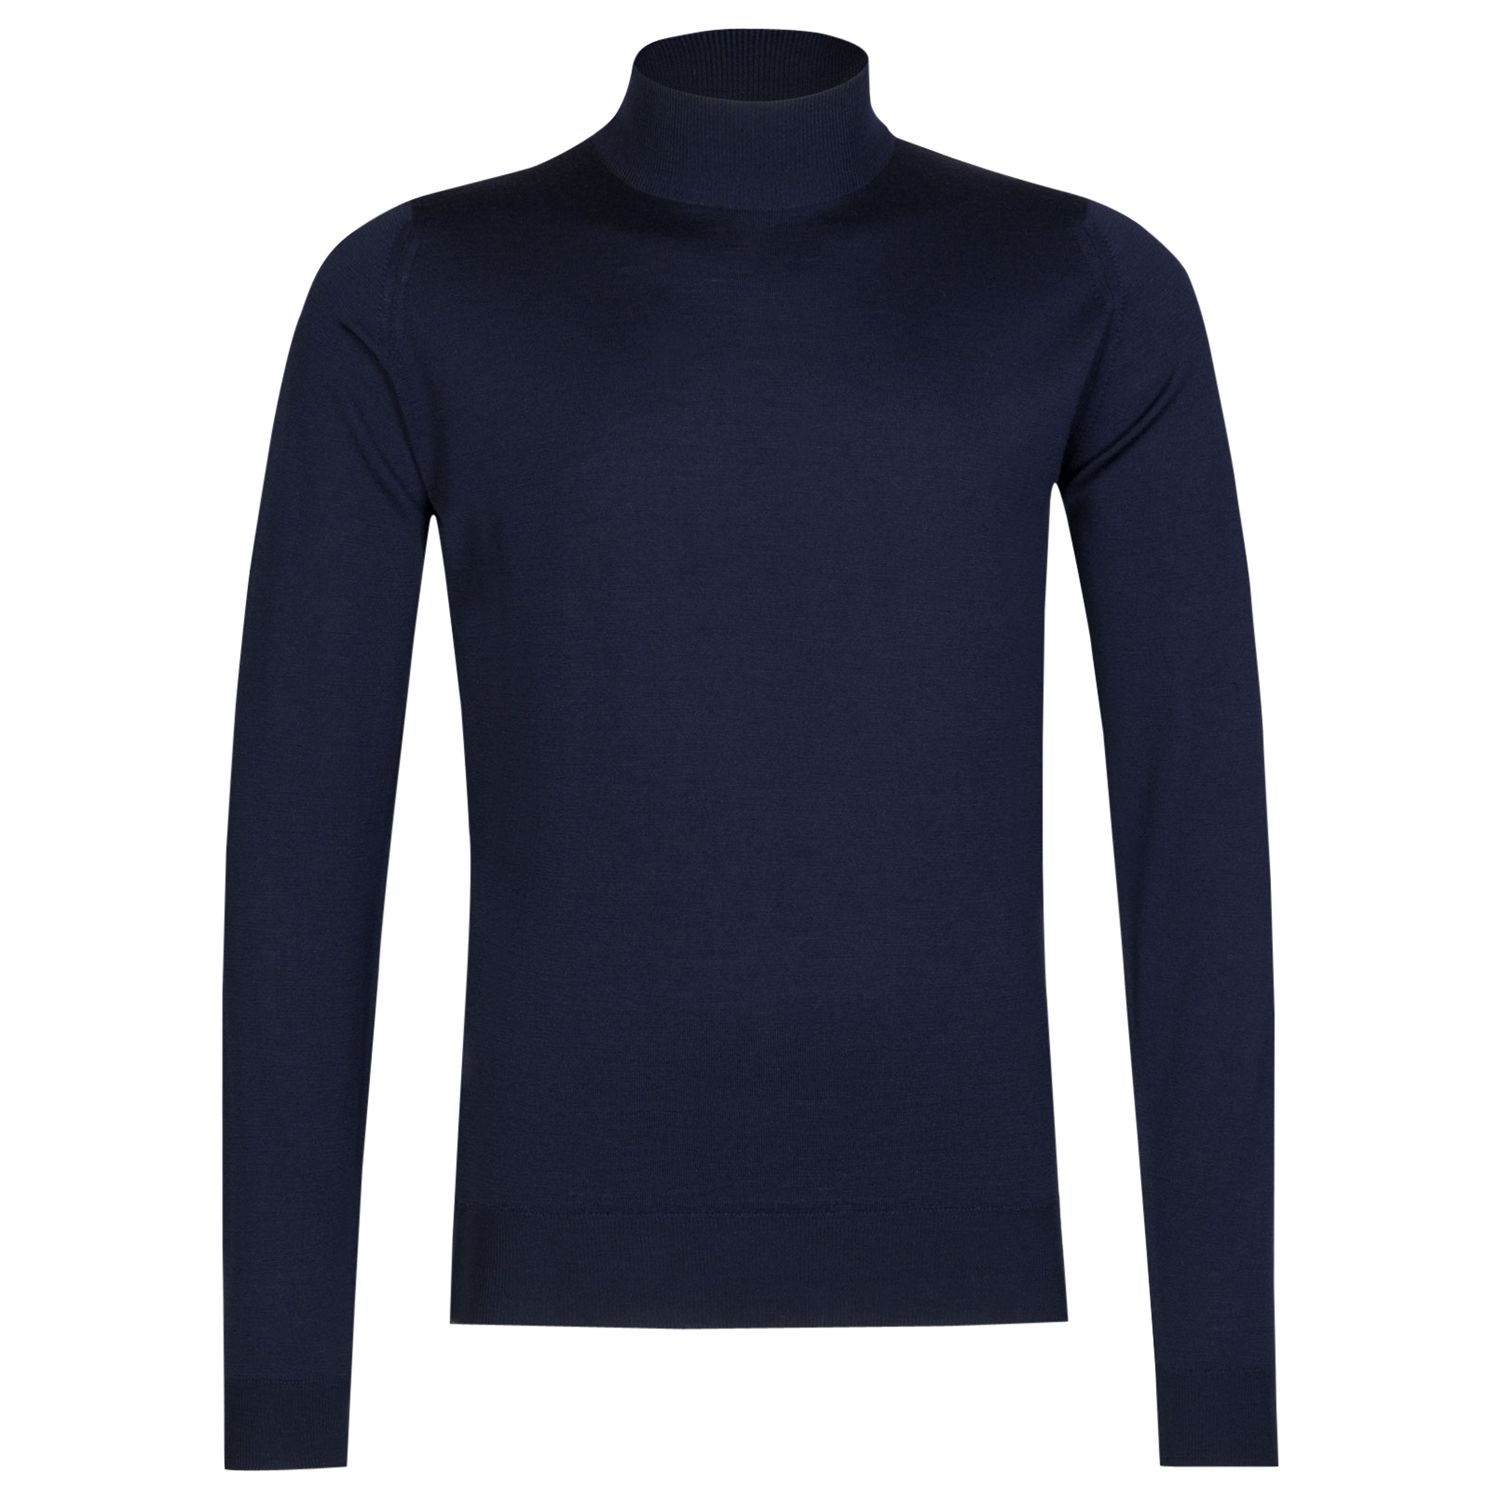 John Smedley John Smedley Harcourt Turtle Neck Jumper, Midnight